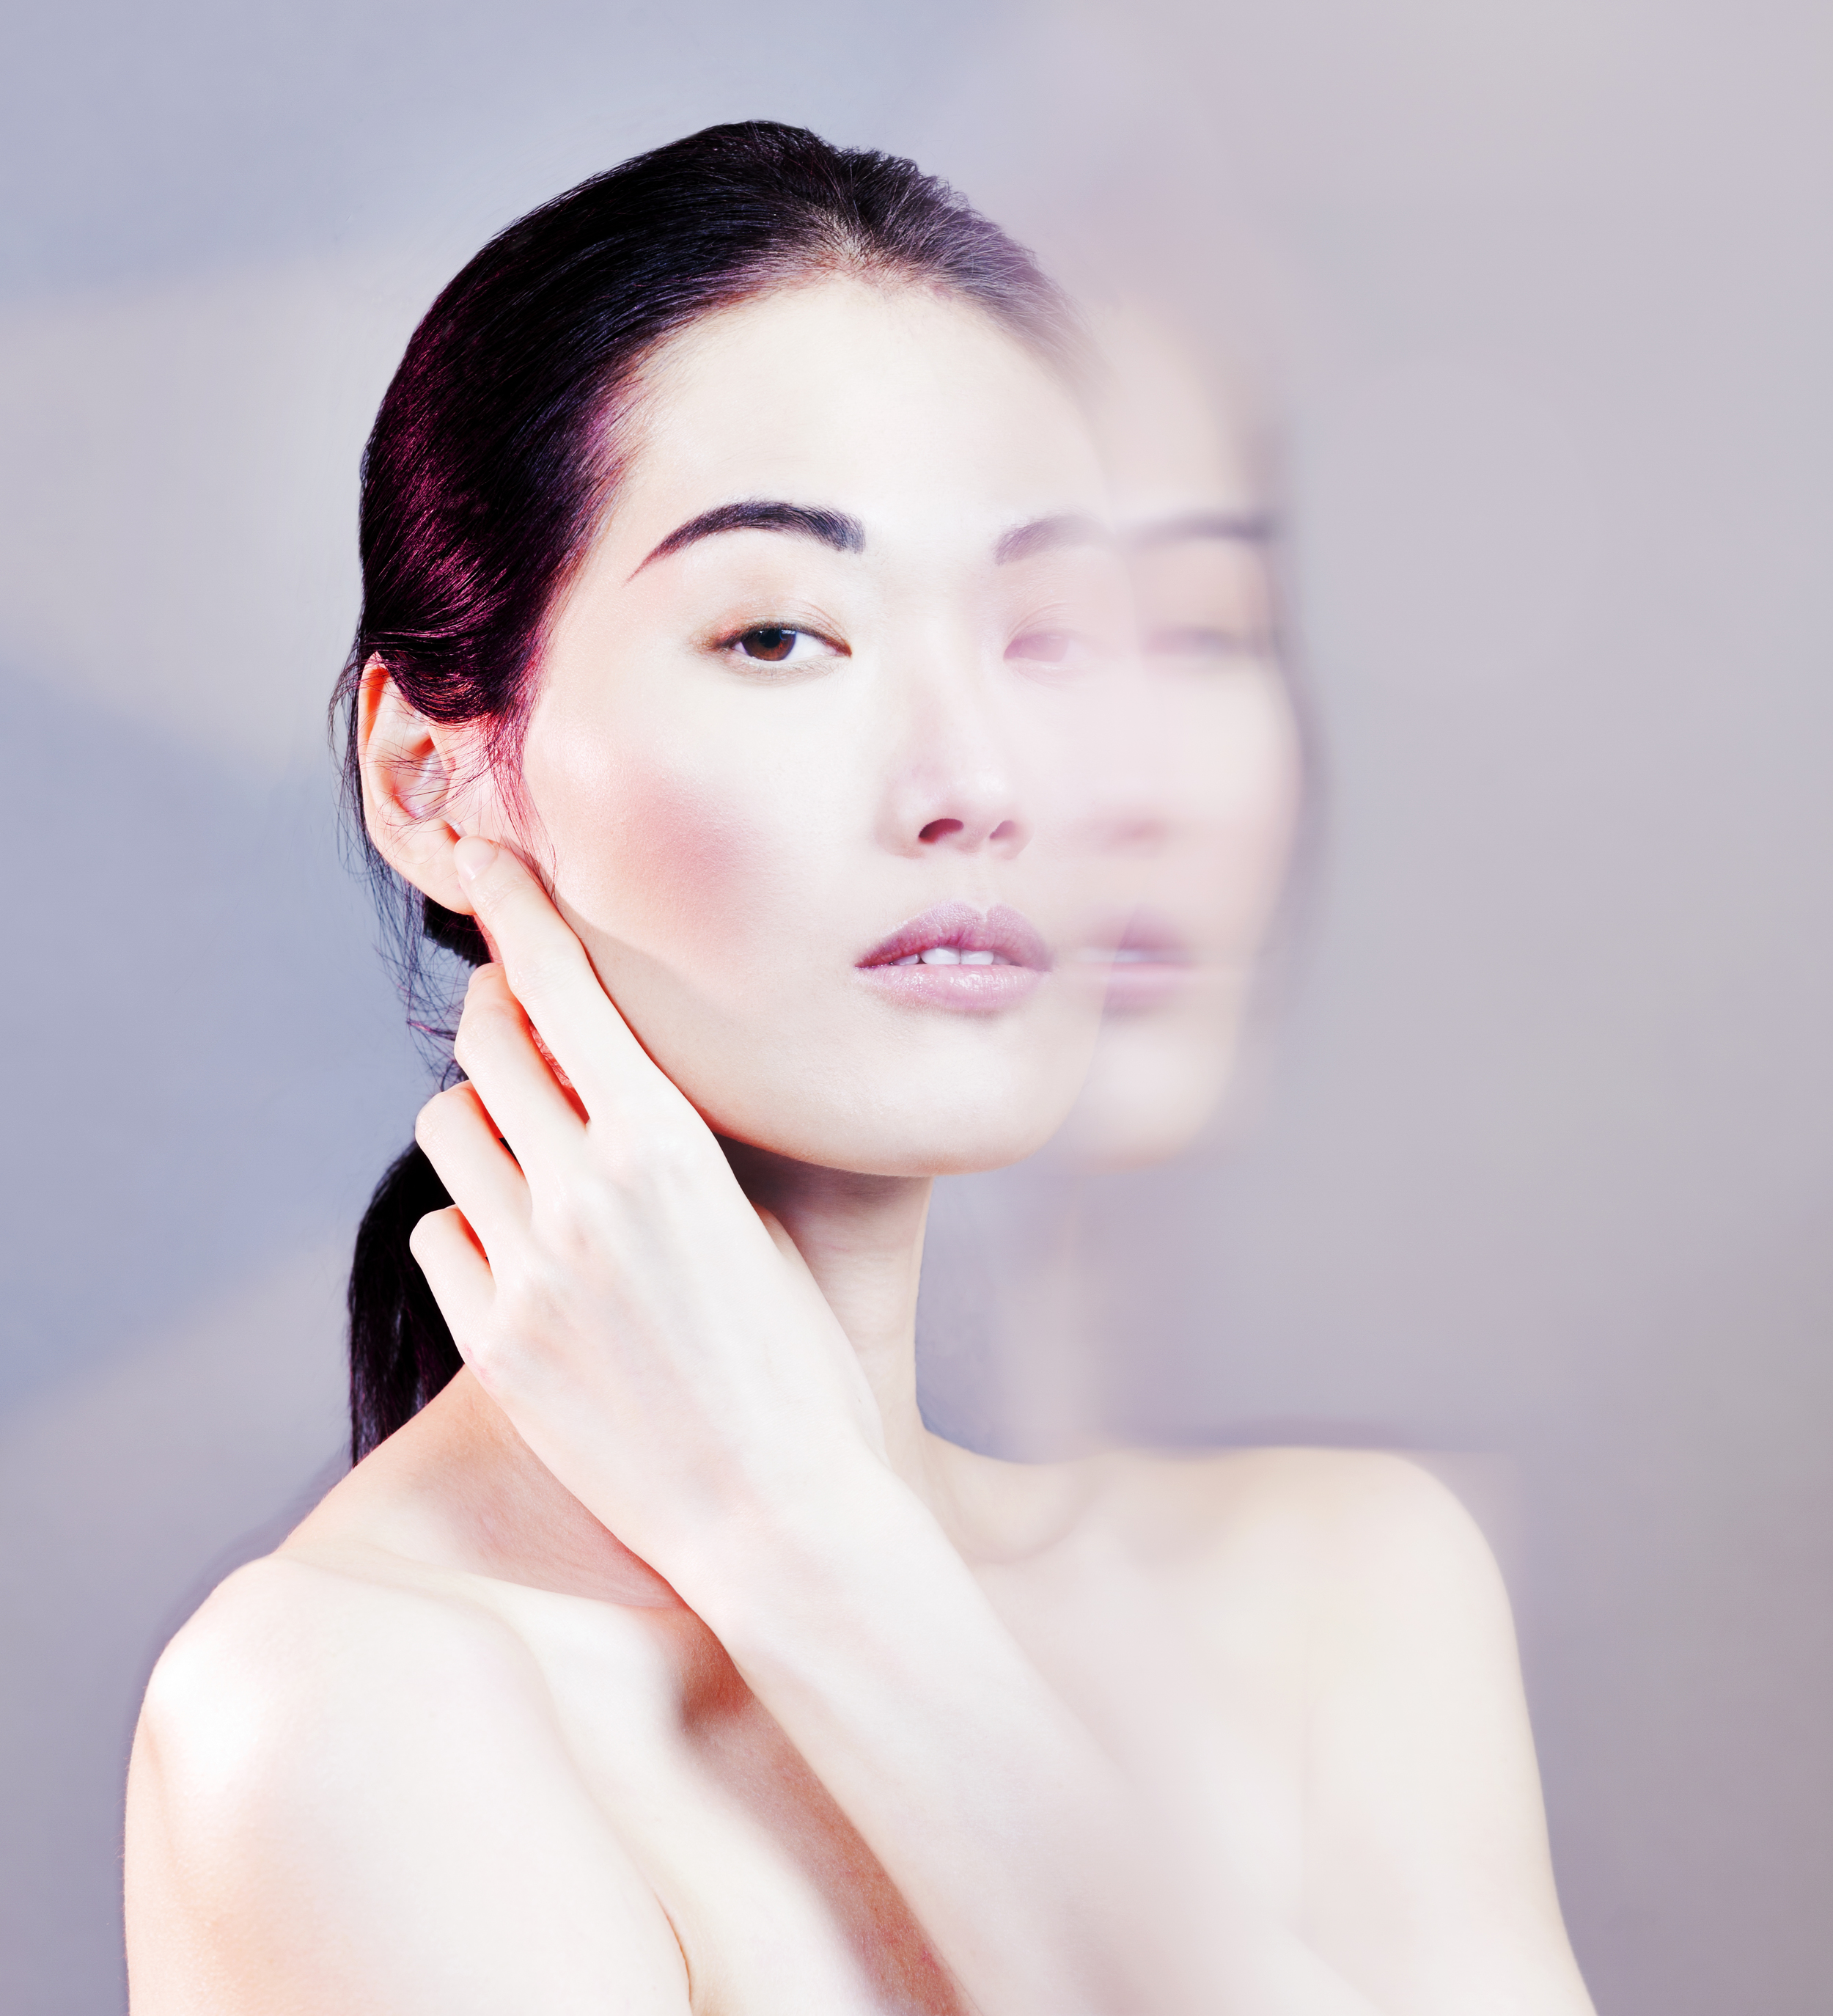 Make-up by Cyril Nesmon @ Backstage Agency . Model is Linli @ Mademoiselle Agency